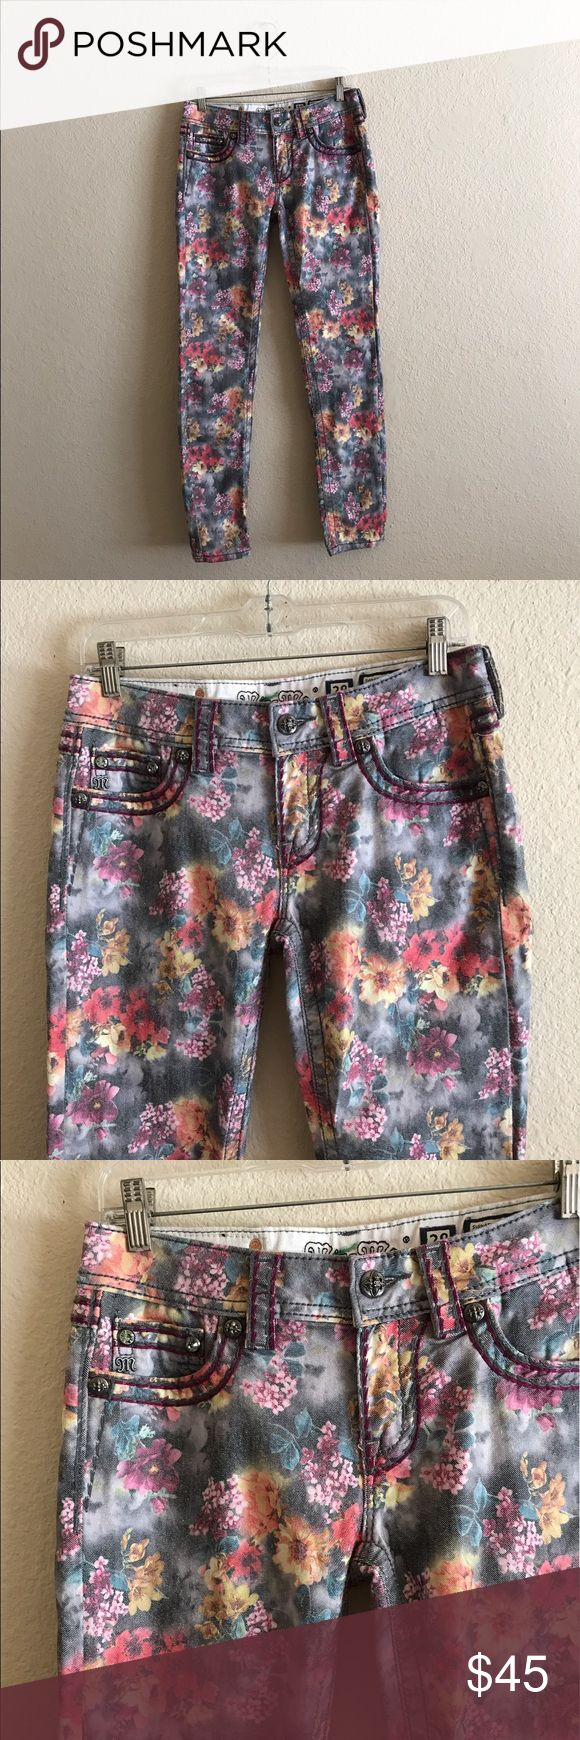 "MISS ME women's Flower Print Skinny Jeans 28 Miss Me women's Flower Print Skinny Jeans.  Size: 28.  In Great condition!  Inseam: 30"".  If you have any questions feel free to ask! Miss Me Jeans Skinny"